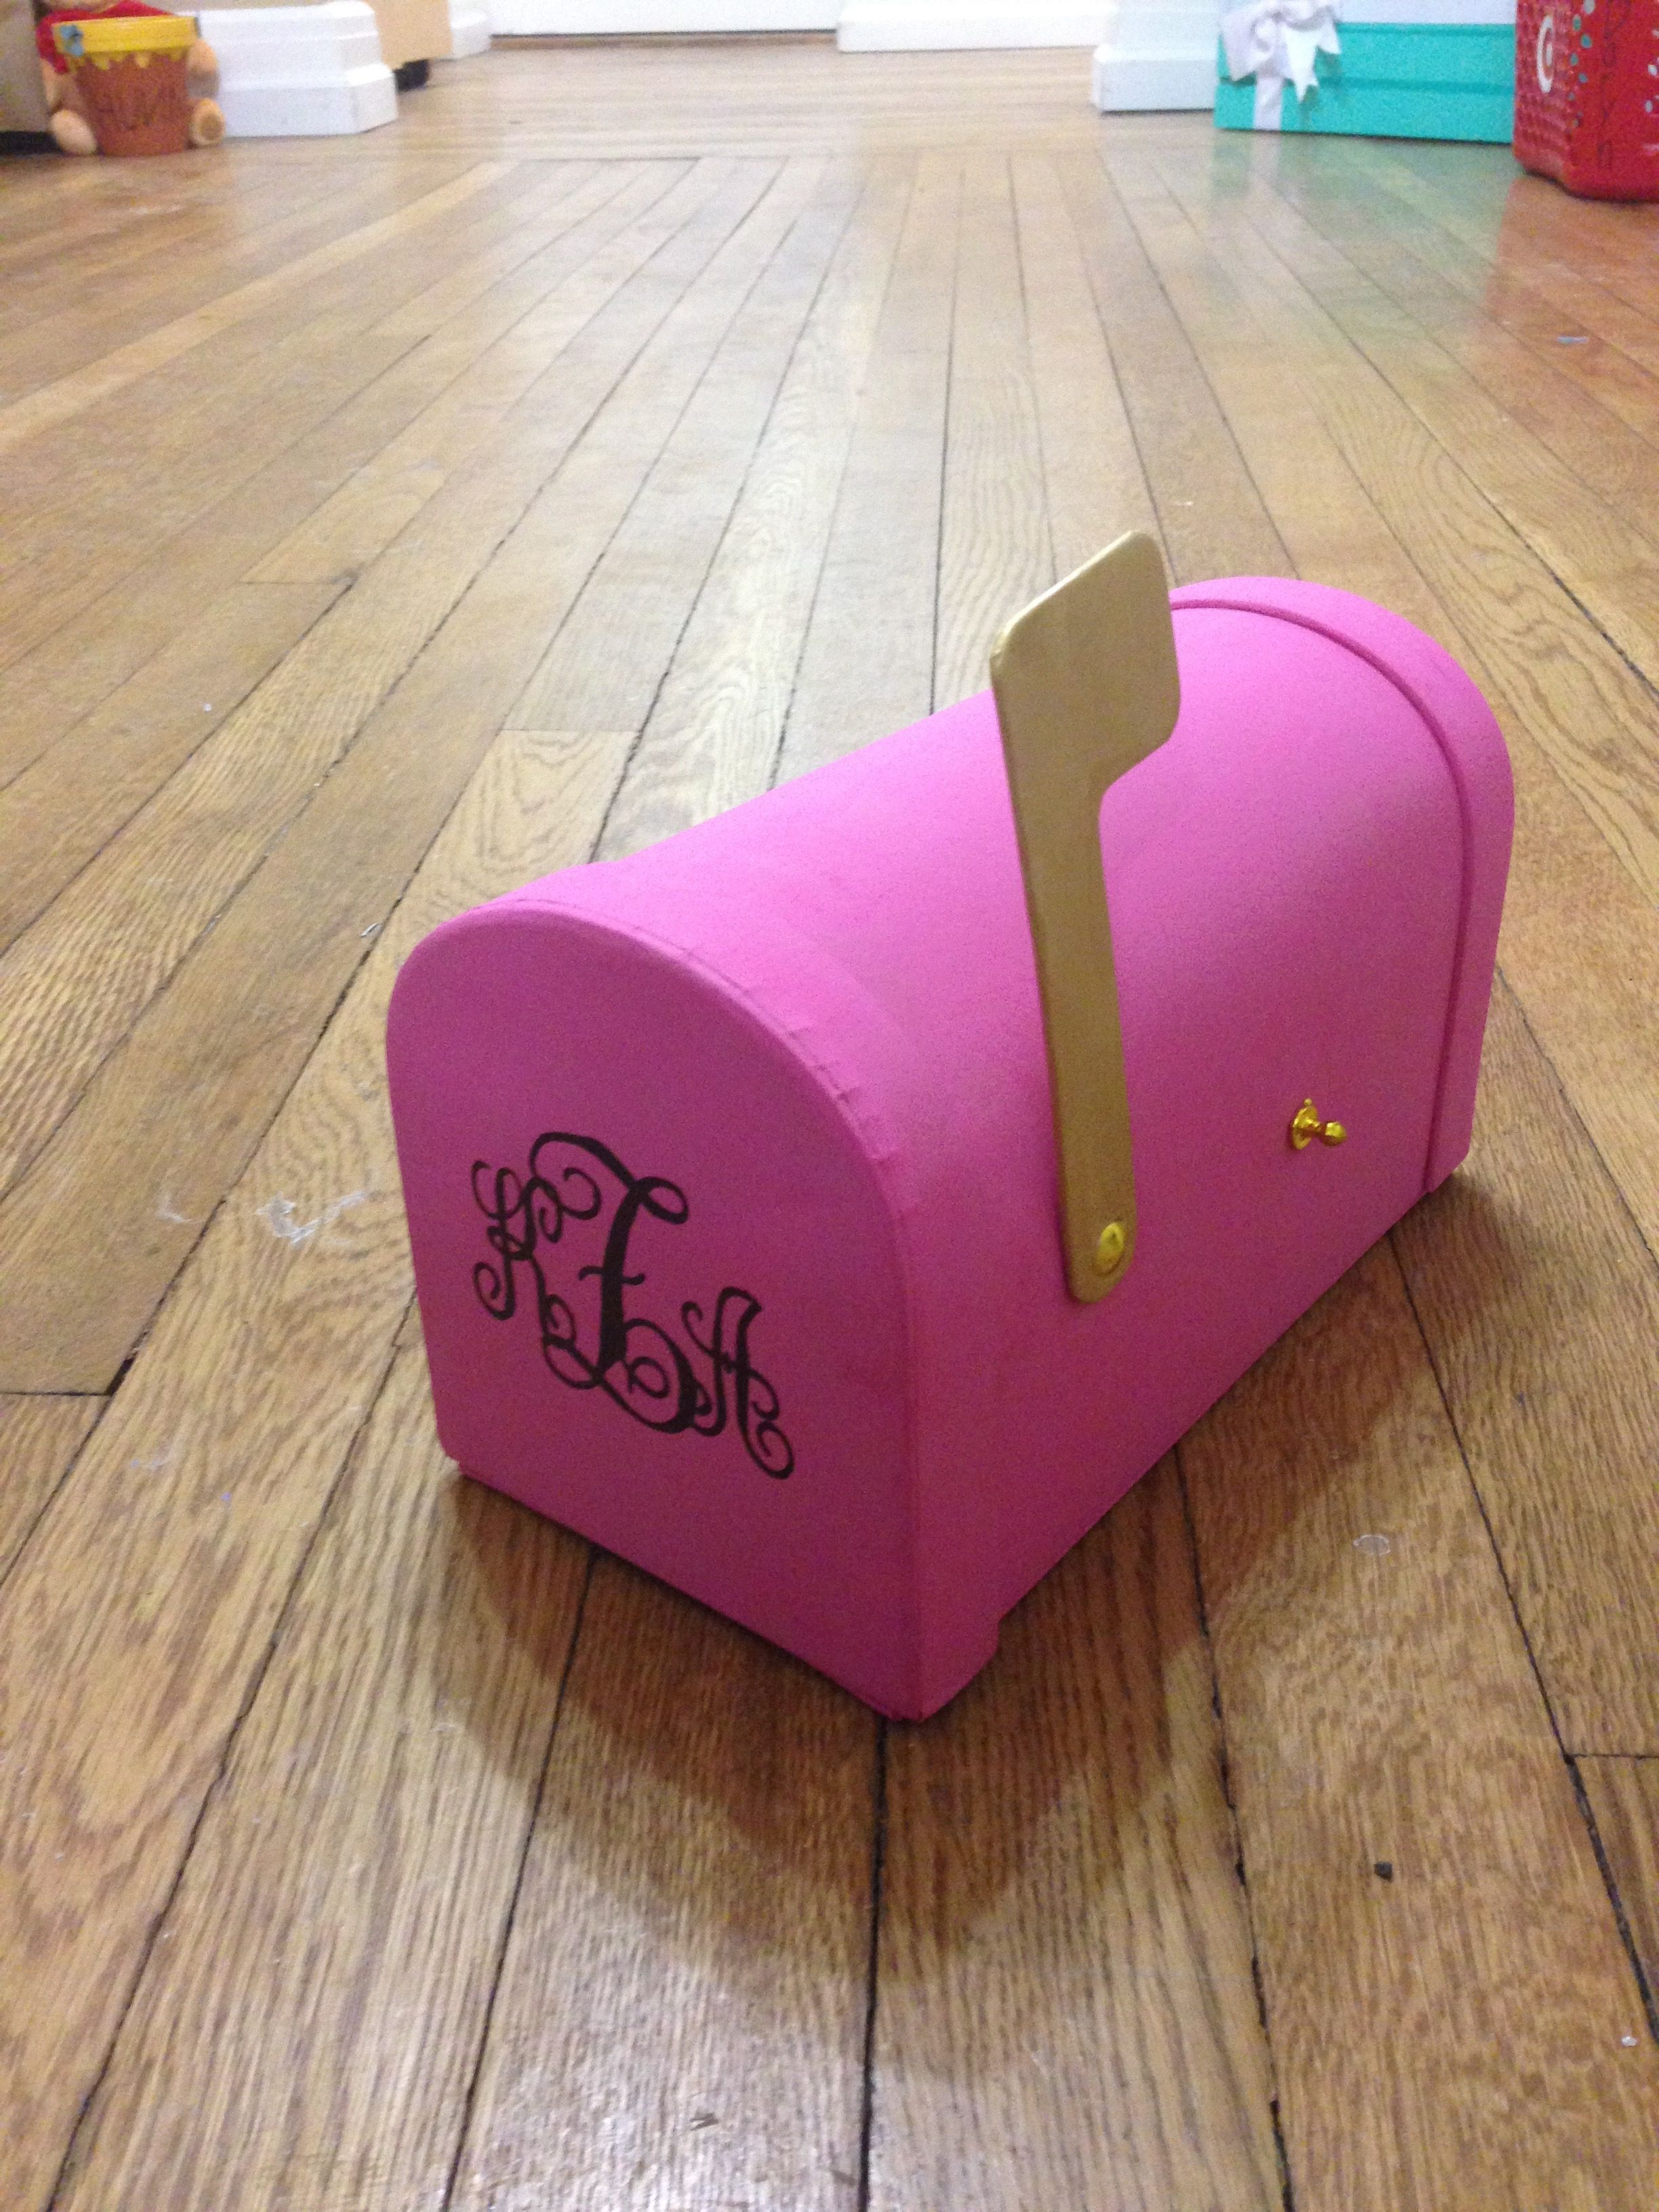 Part of my little's clue box included this mailbox with her monogram on the front.  Big, Little, Dphie, Delta, Phi, Epsilon, Sorority, Craft, Mailbox, Monogram